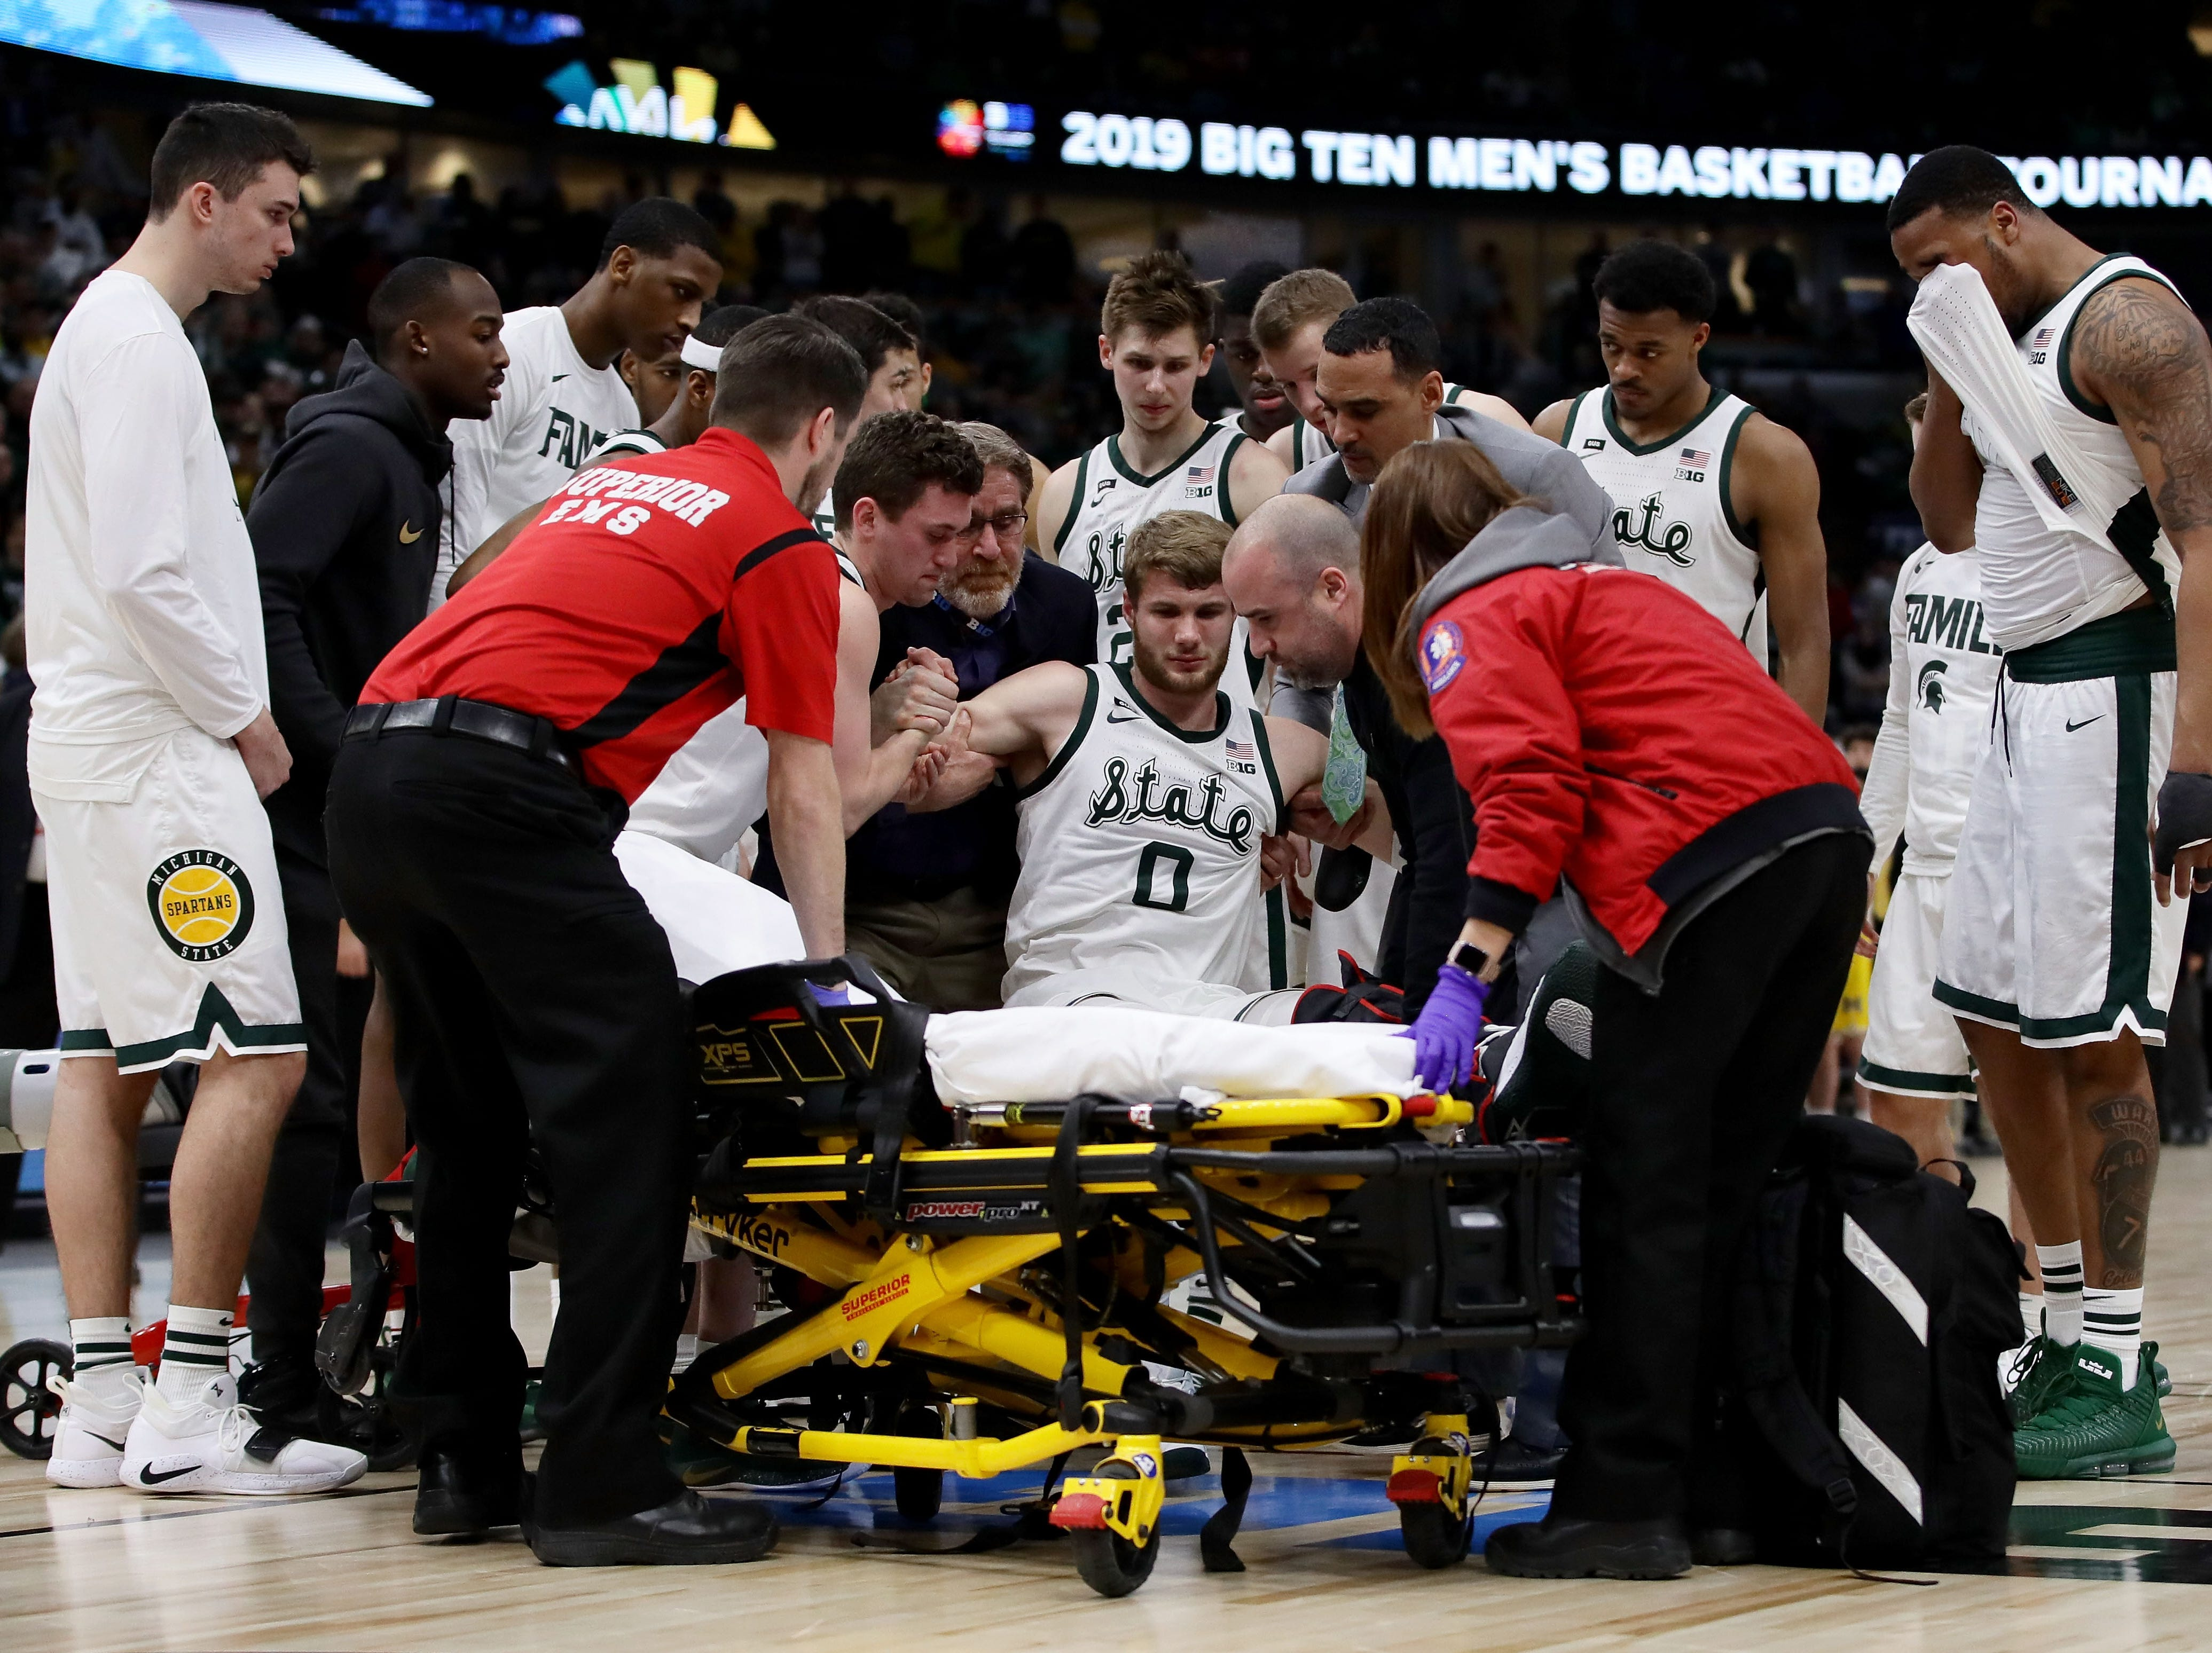 Kyle Ahrens #0 of the Michigan State Spartans is attended to after being injured in the first half against the Michigan Wolverines during the championship game of the Big Ten Basketball Tournament at the United Center on March 17, 2019 in Chicago, Illinois.